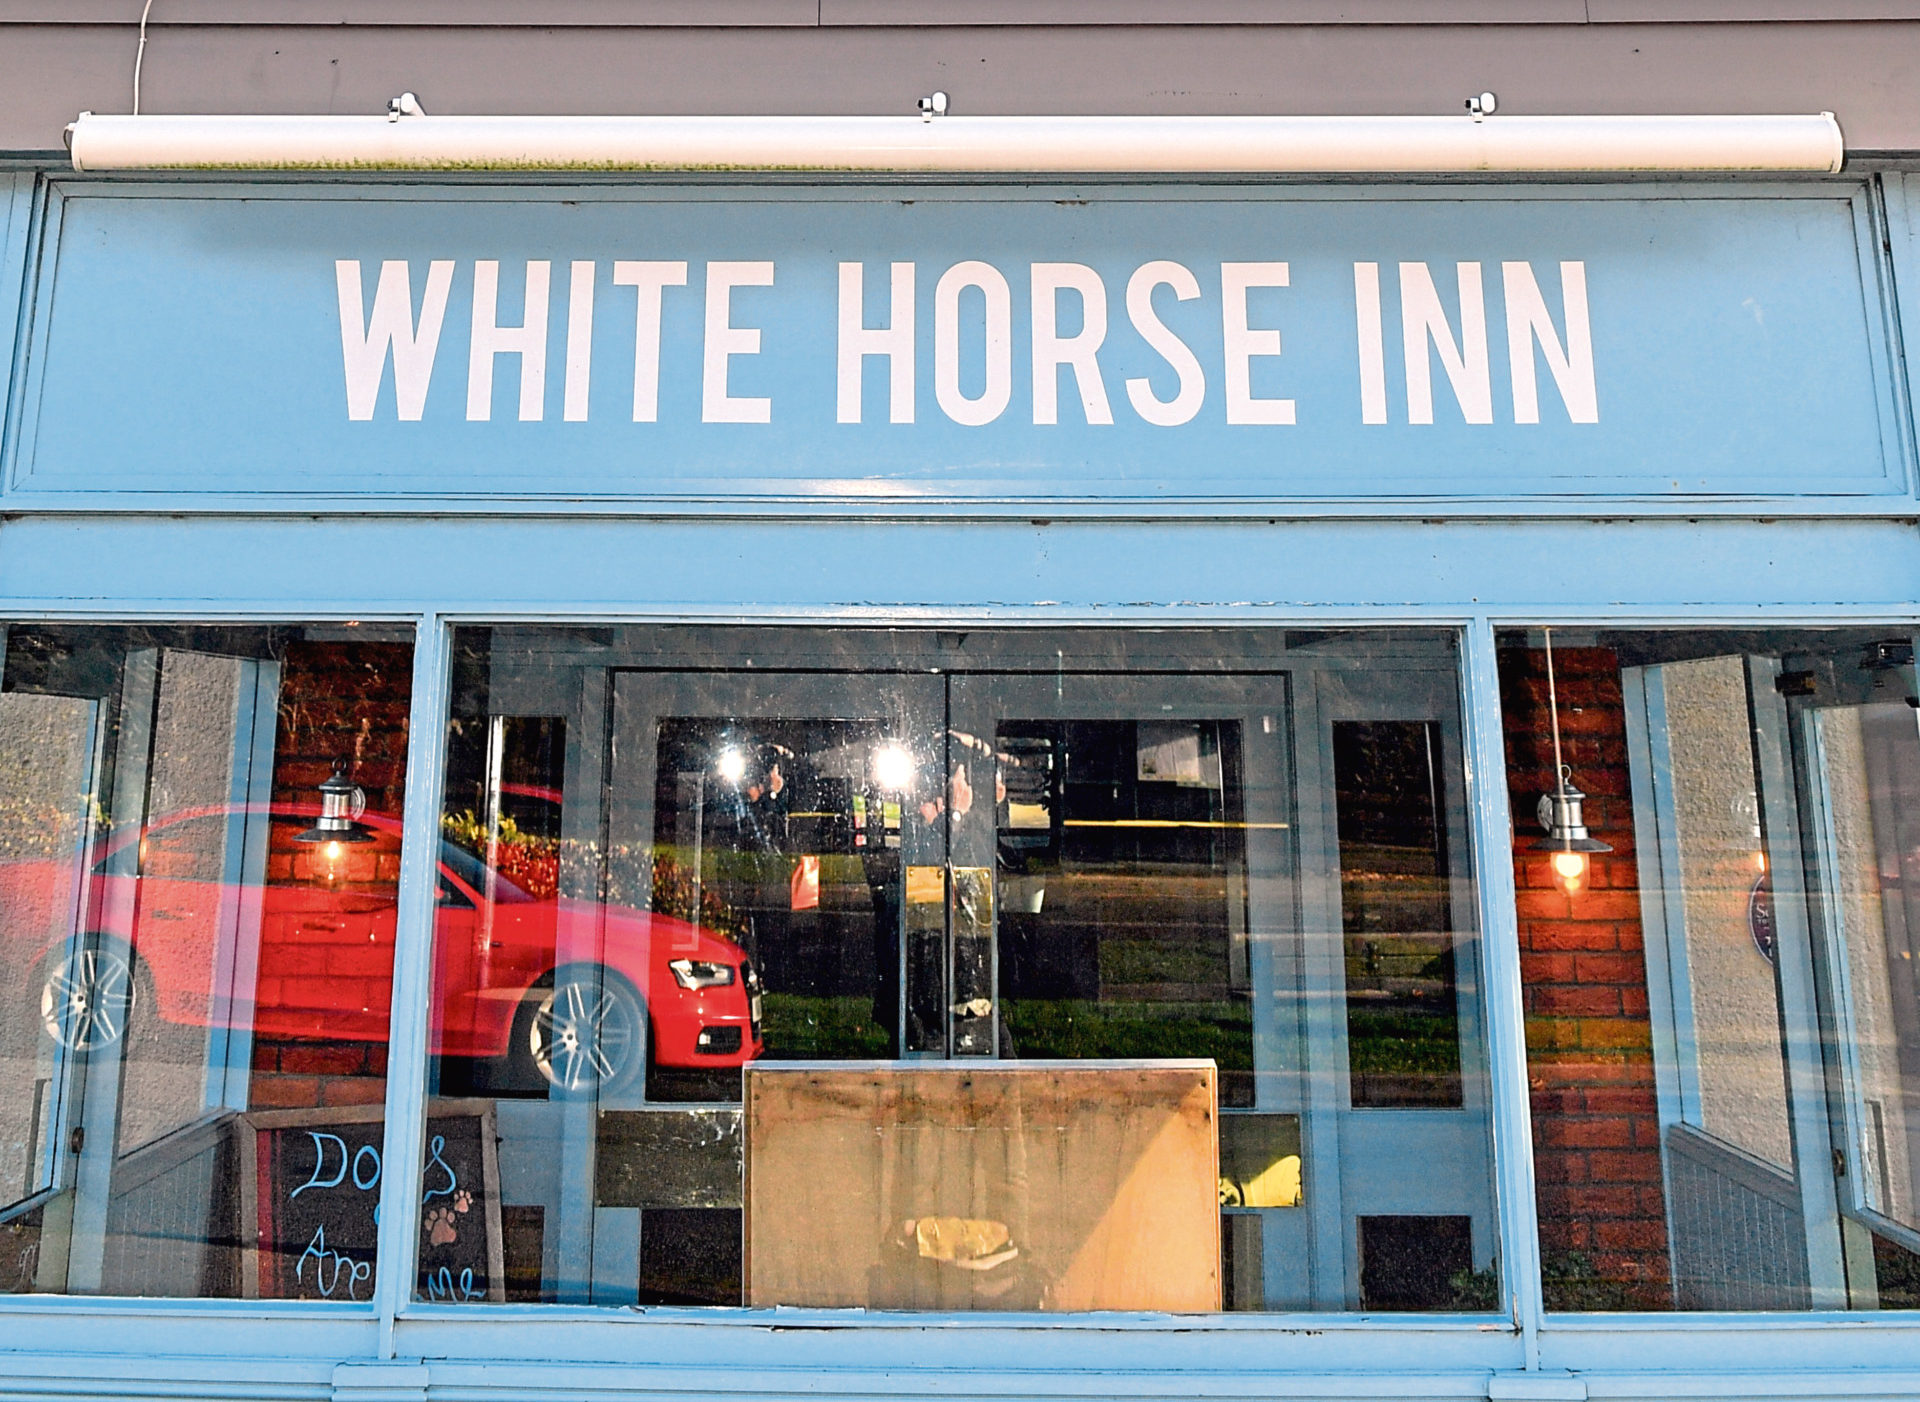 The White Horse Inn has closed its doors